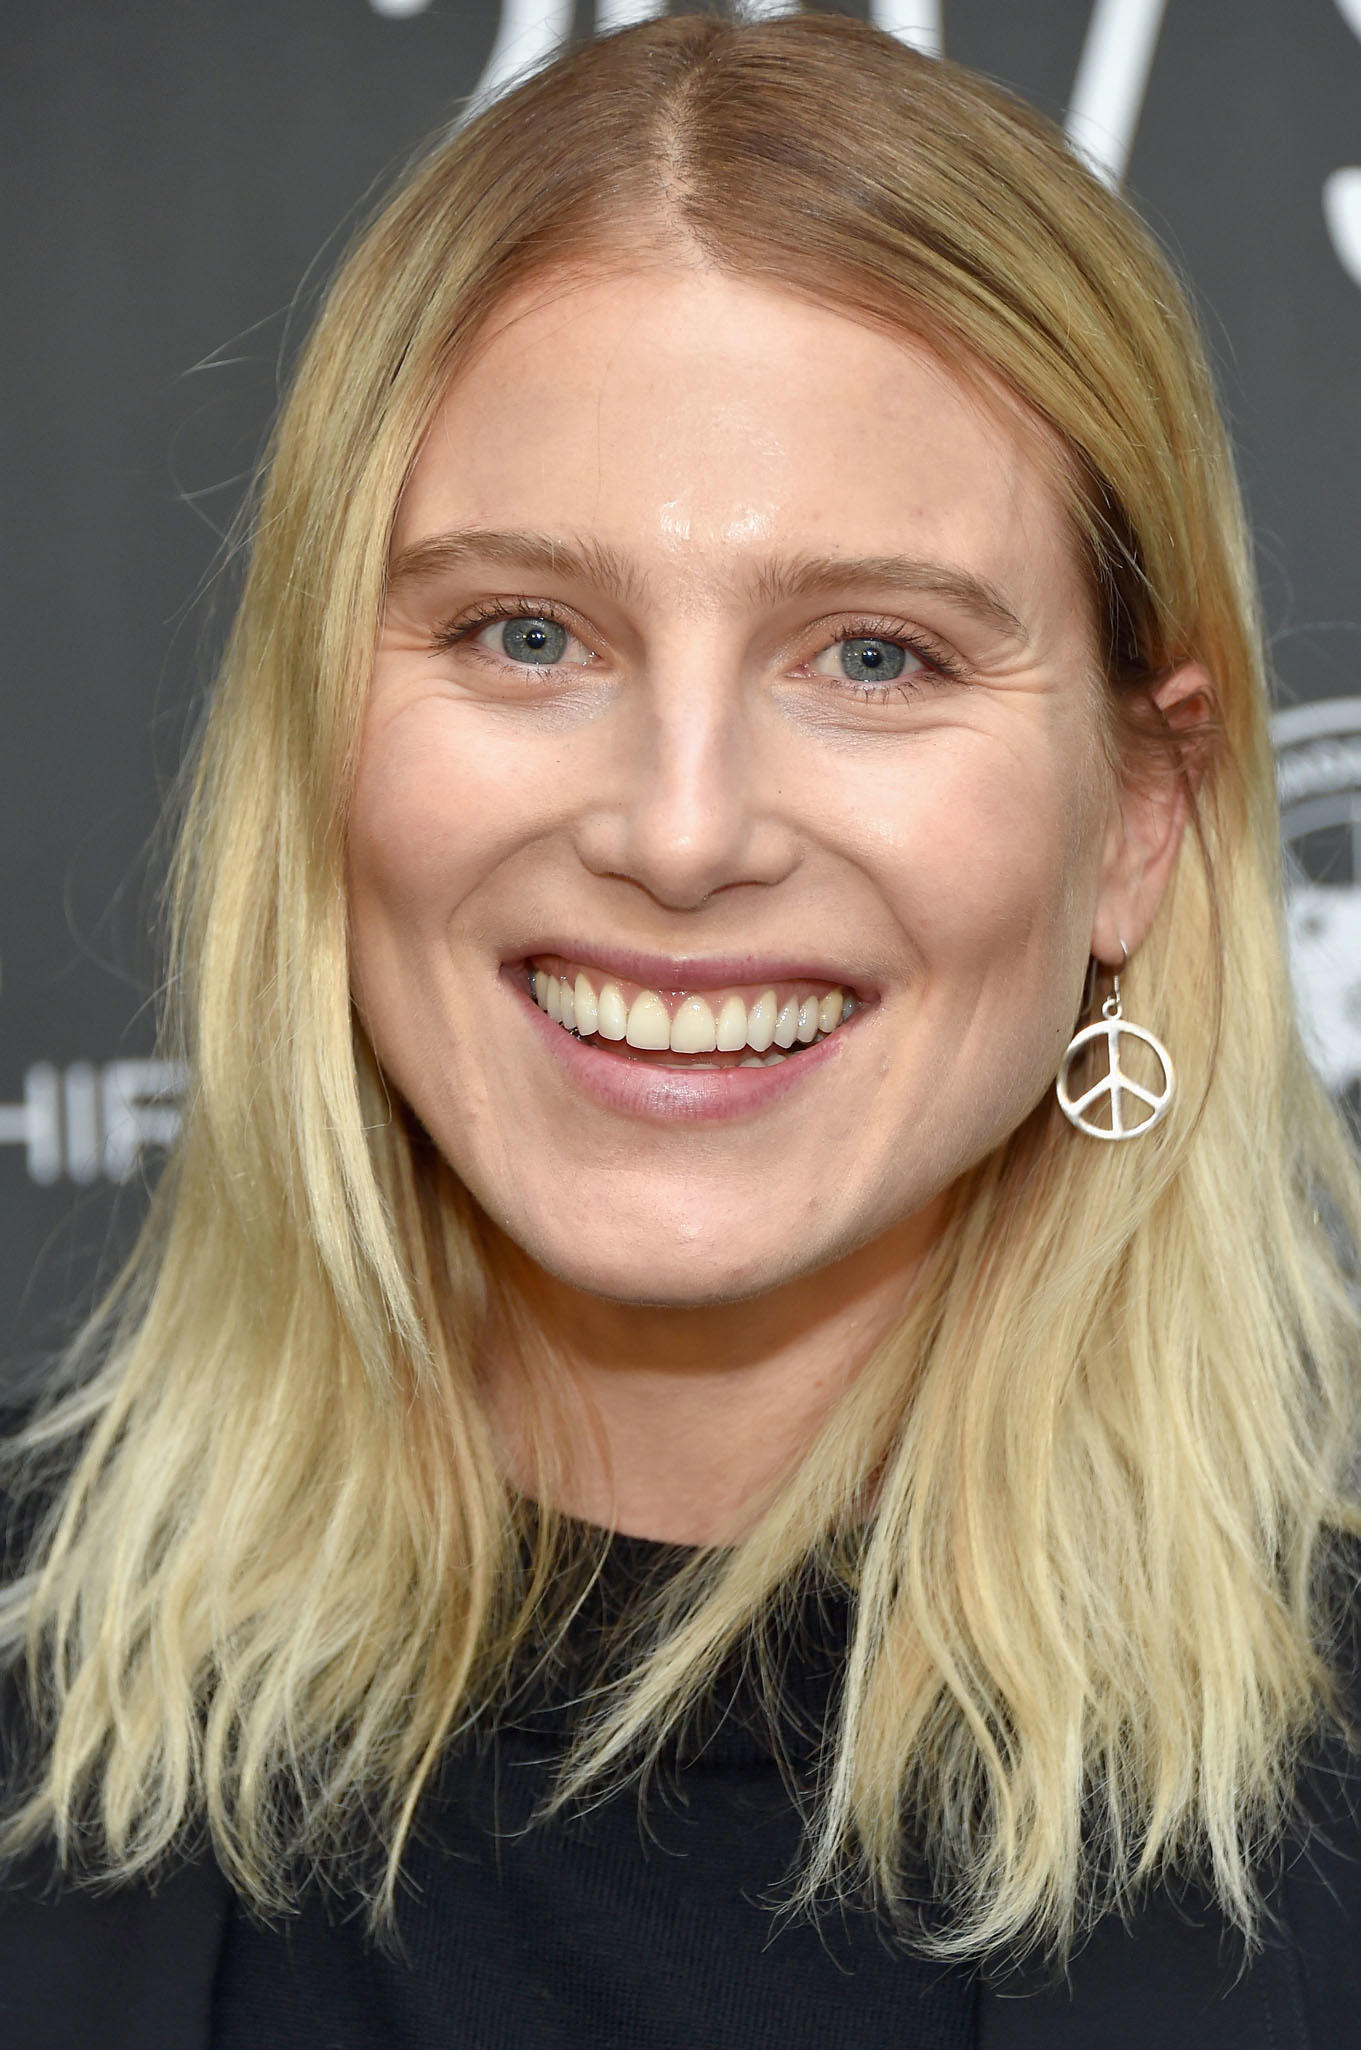 Dree Hemingway at the premiere of